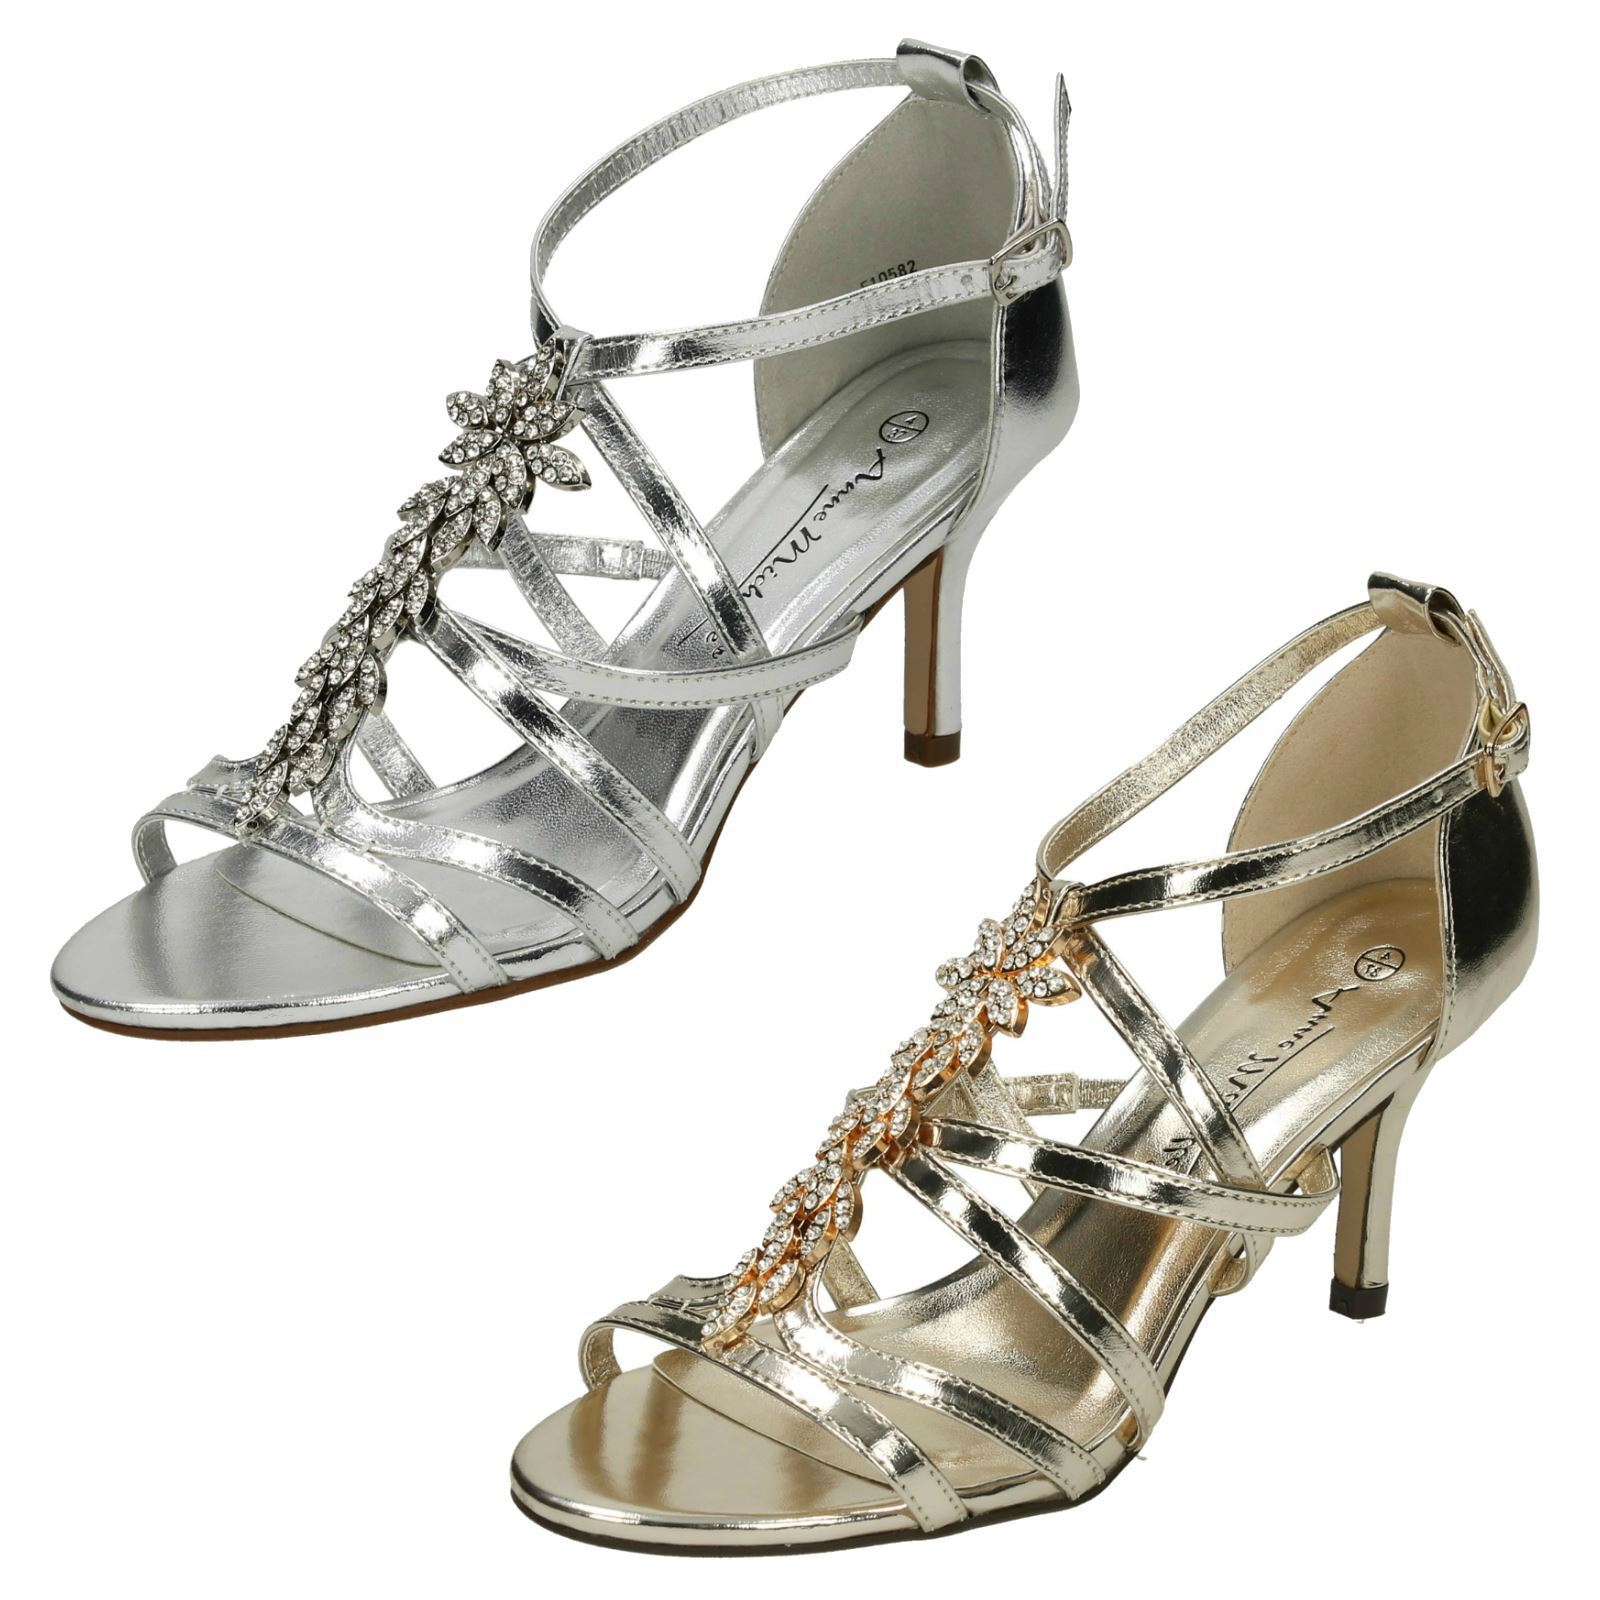 670aed2c015 Ladies Anne Michelle Mid Heel Strappy Sandals F10582 Silver UK 8 Standard